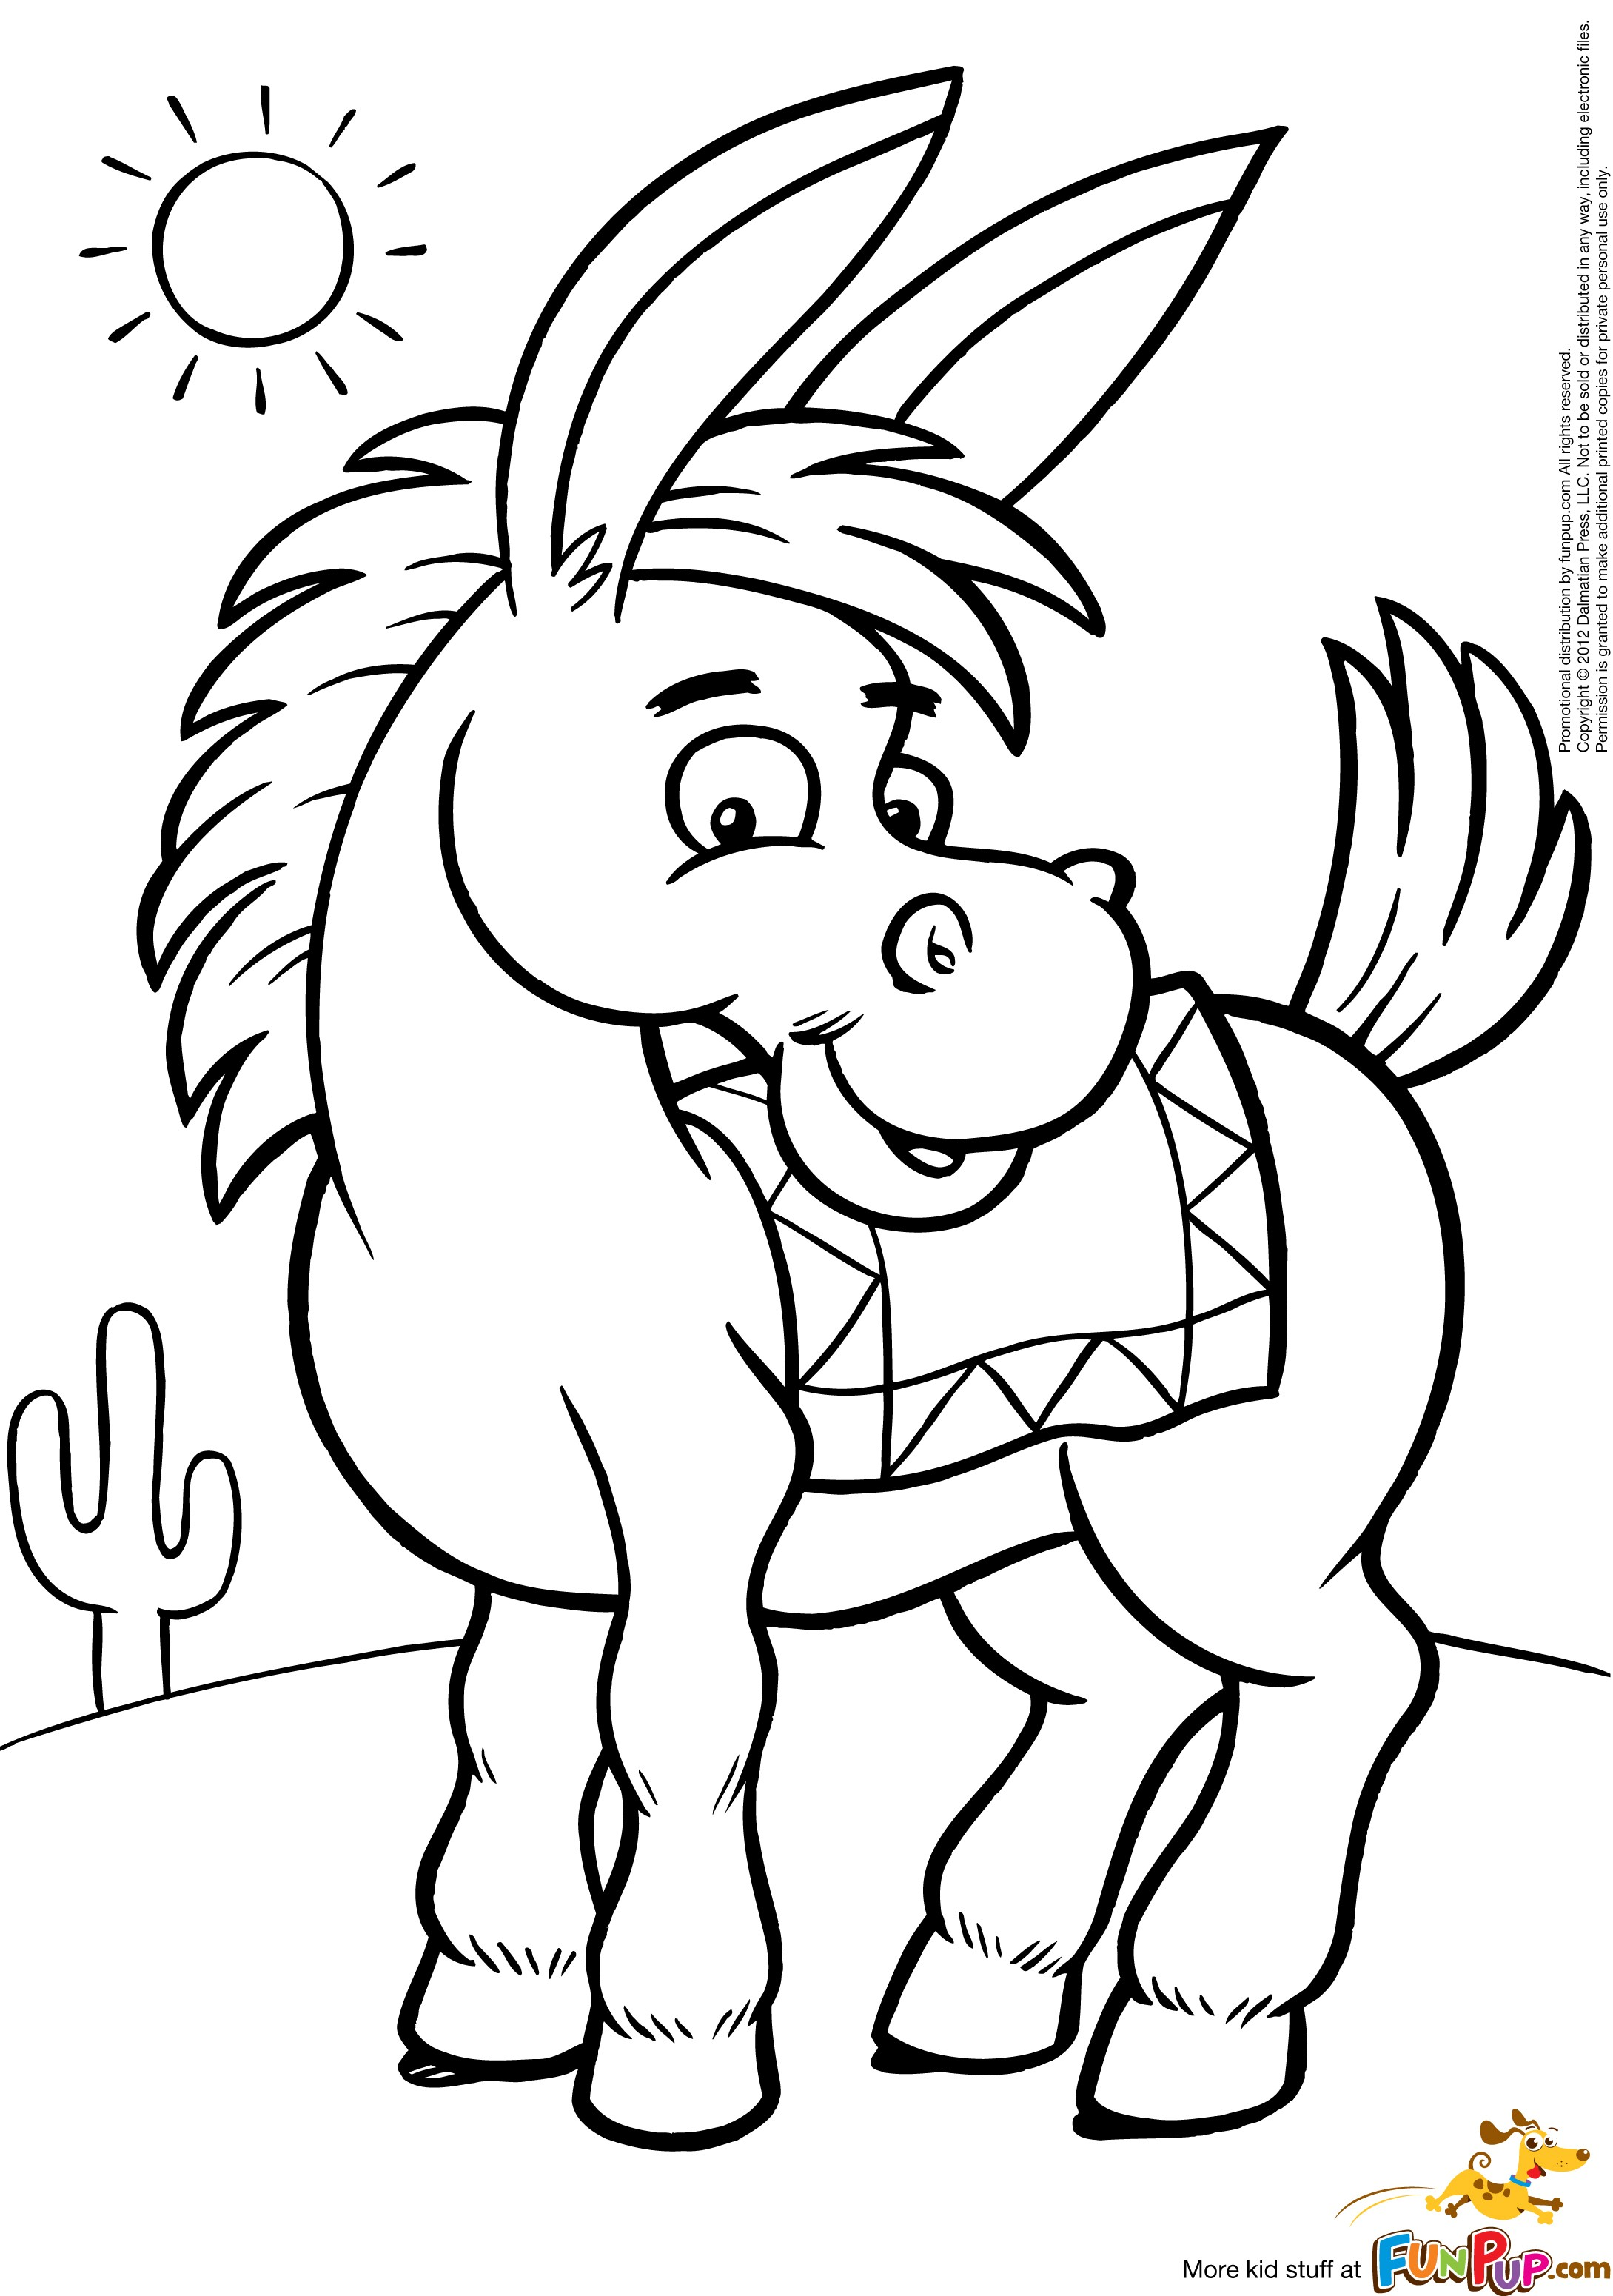 free printable coloring pictures 40 top free coloring pages we need fun pictures free coloring printable